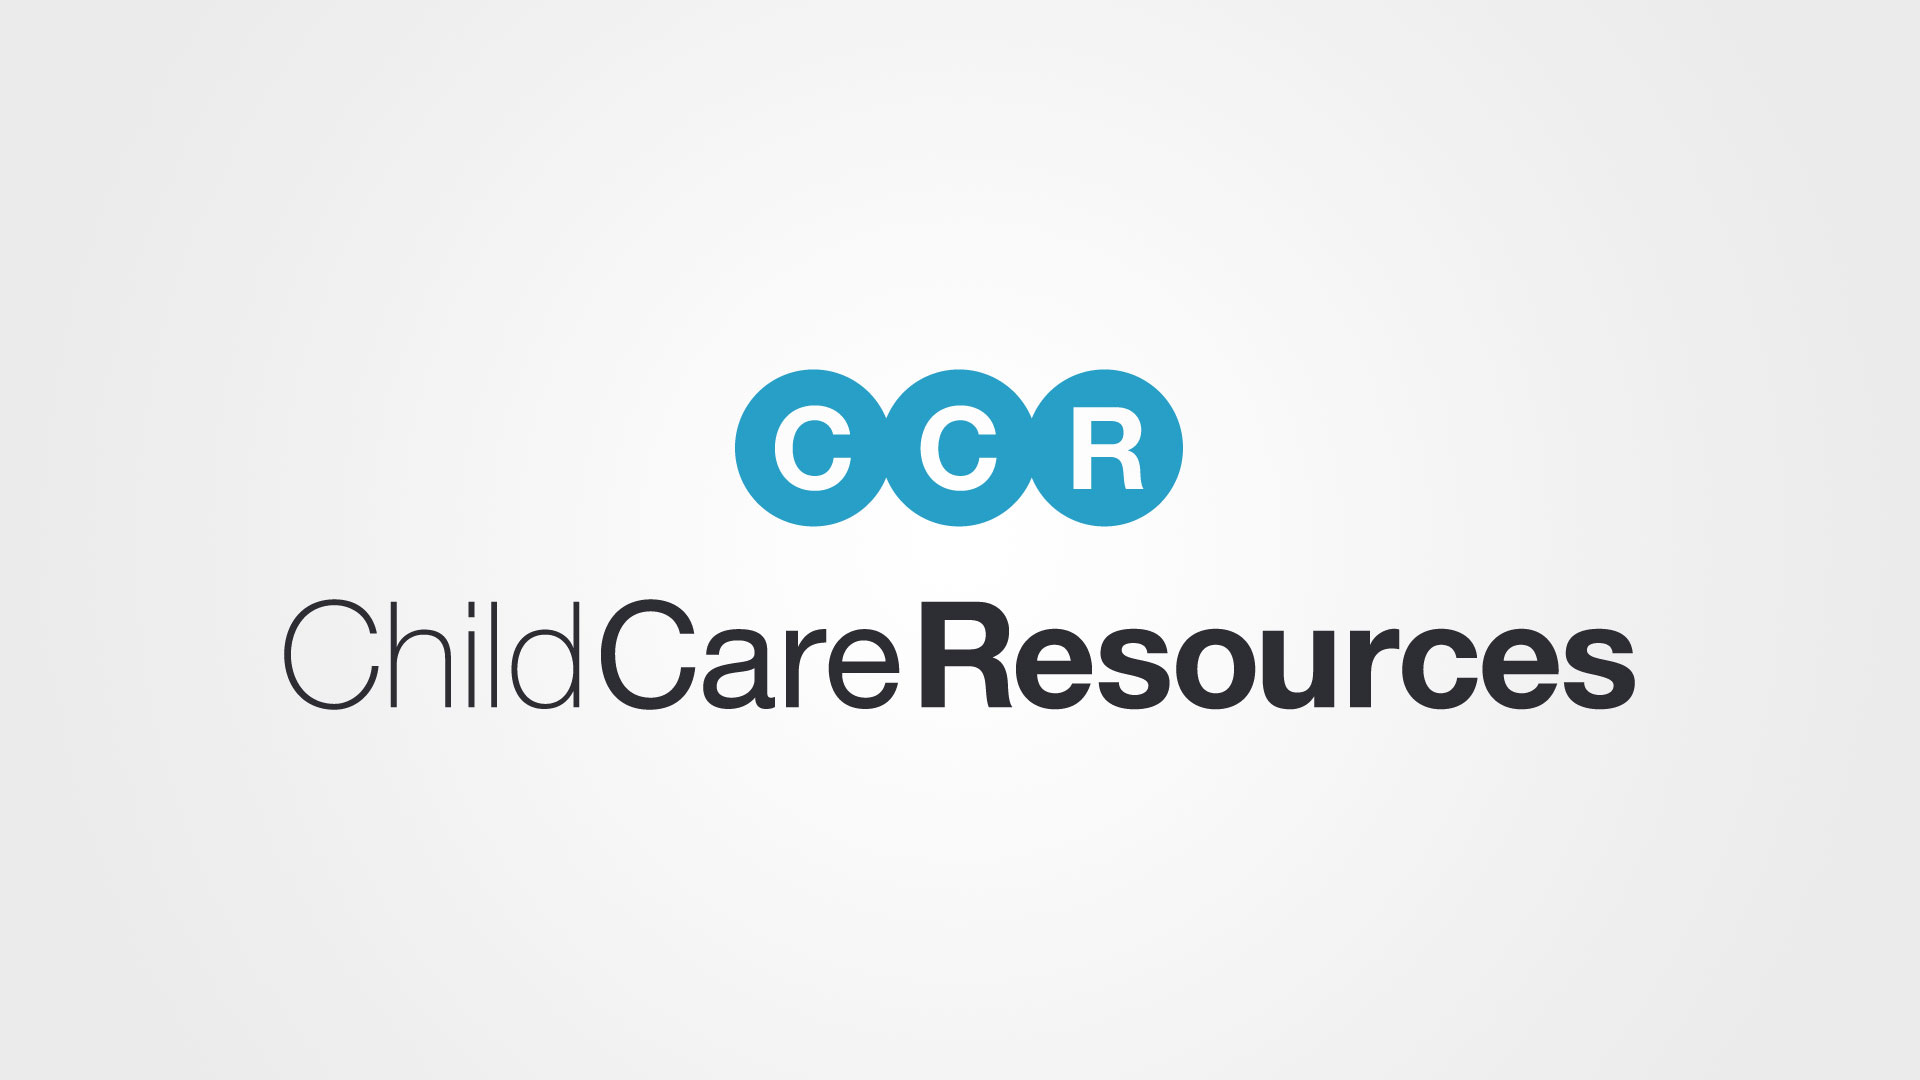 Child Care Resources Branding Logo Design